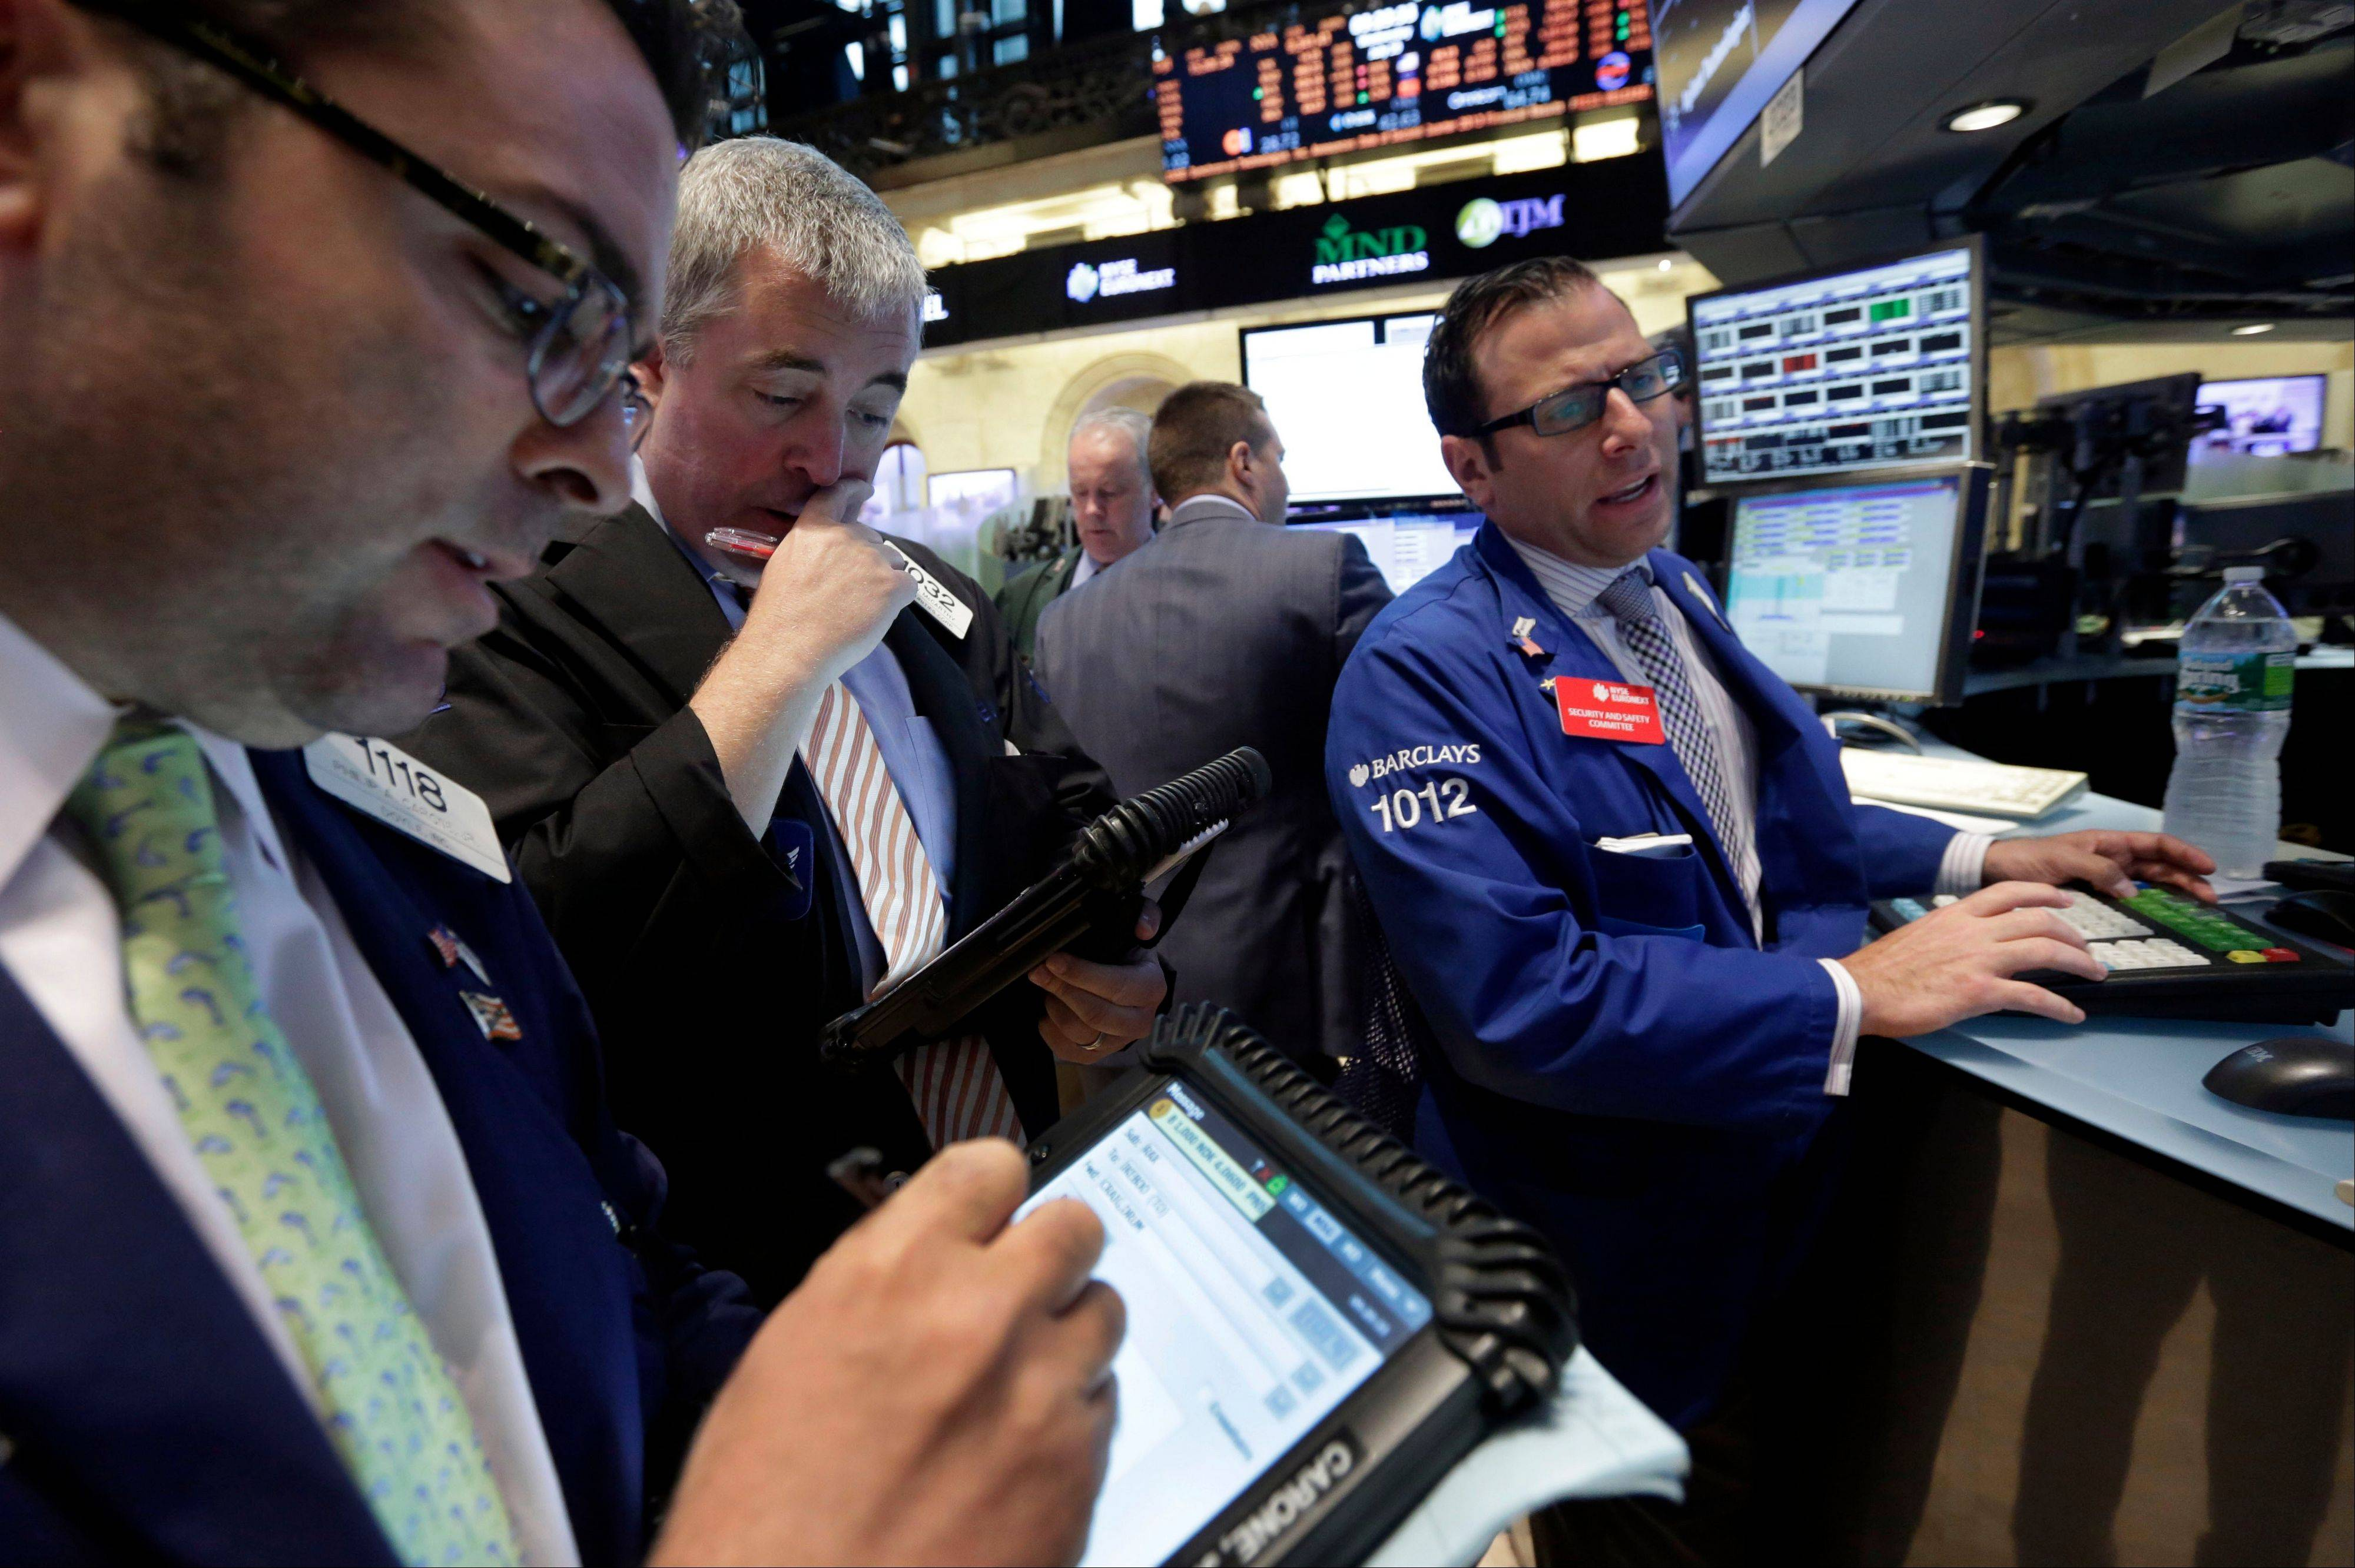 U.S. stocks were little changed as investors analyzed minutes from the Federal Reserve�s last meeting for signs on when the central bank might slow the pace of stimulus efforts.